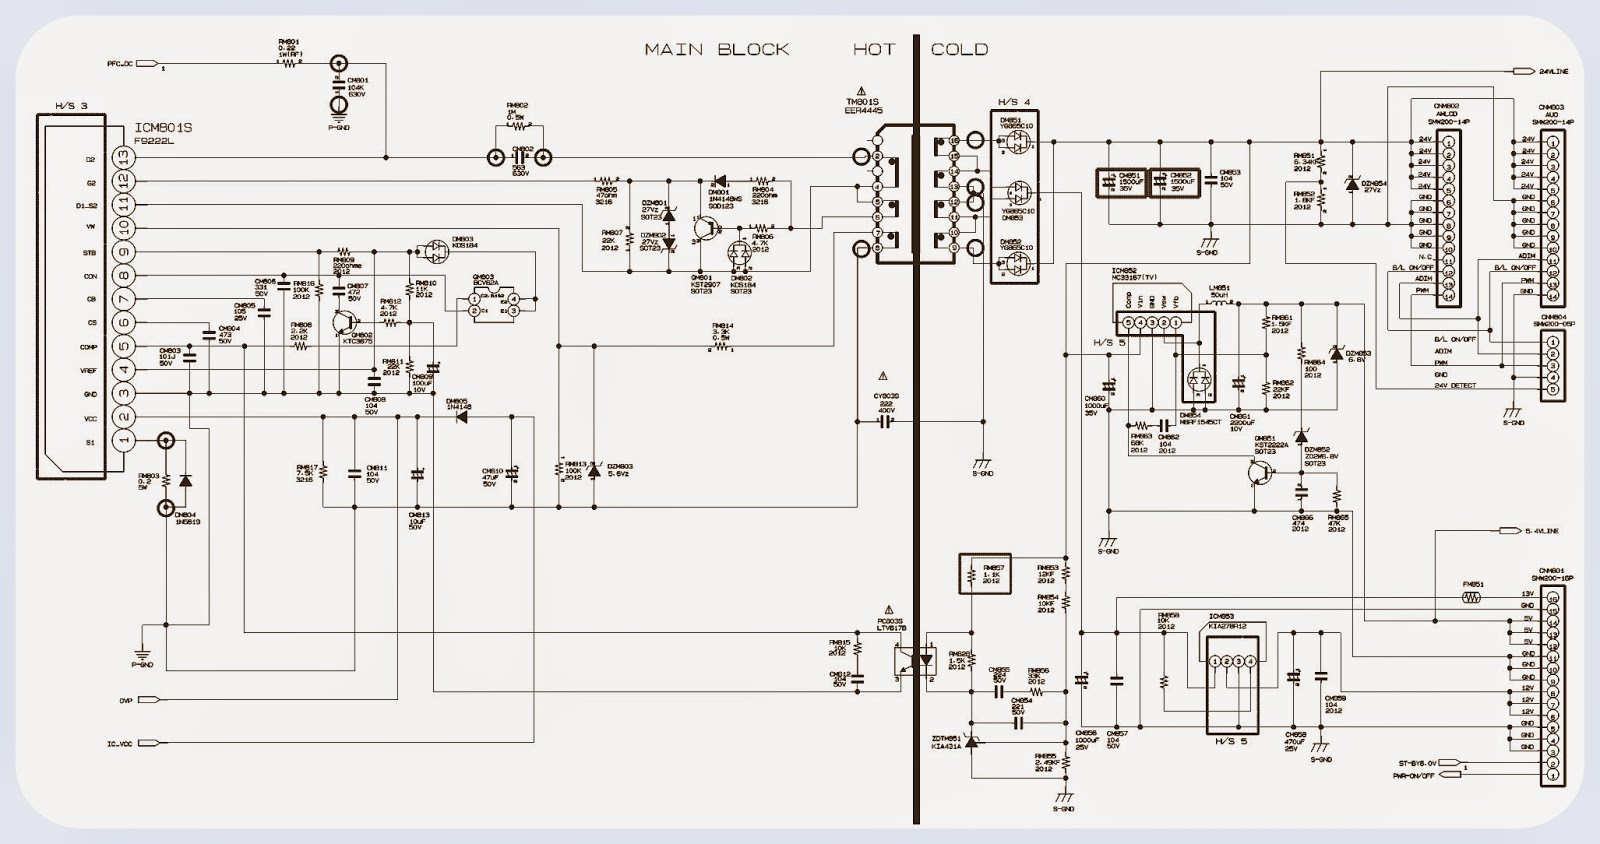 bn-7997 - inverter - samsung lcd tv - schematic | electro help samsung schematic diagrams